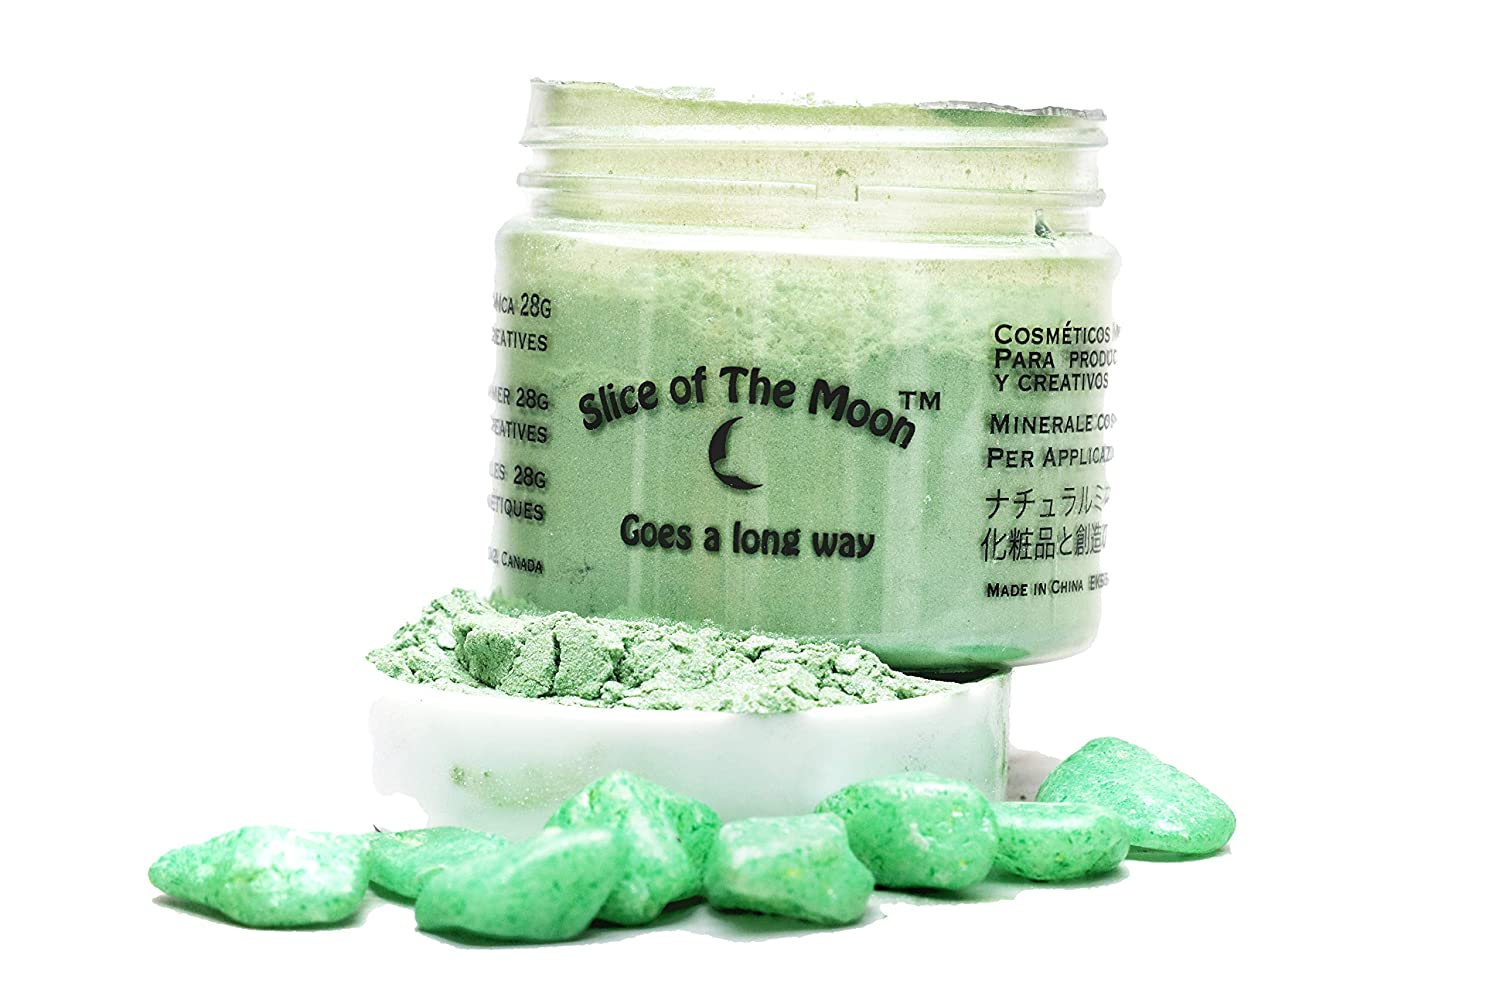 Slice Of The Moon Apple Green Mica Powder Cosmetic, 28g EKS Entertainment Group